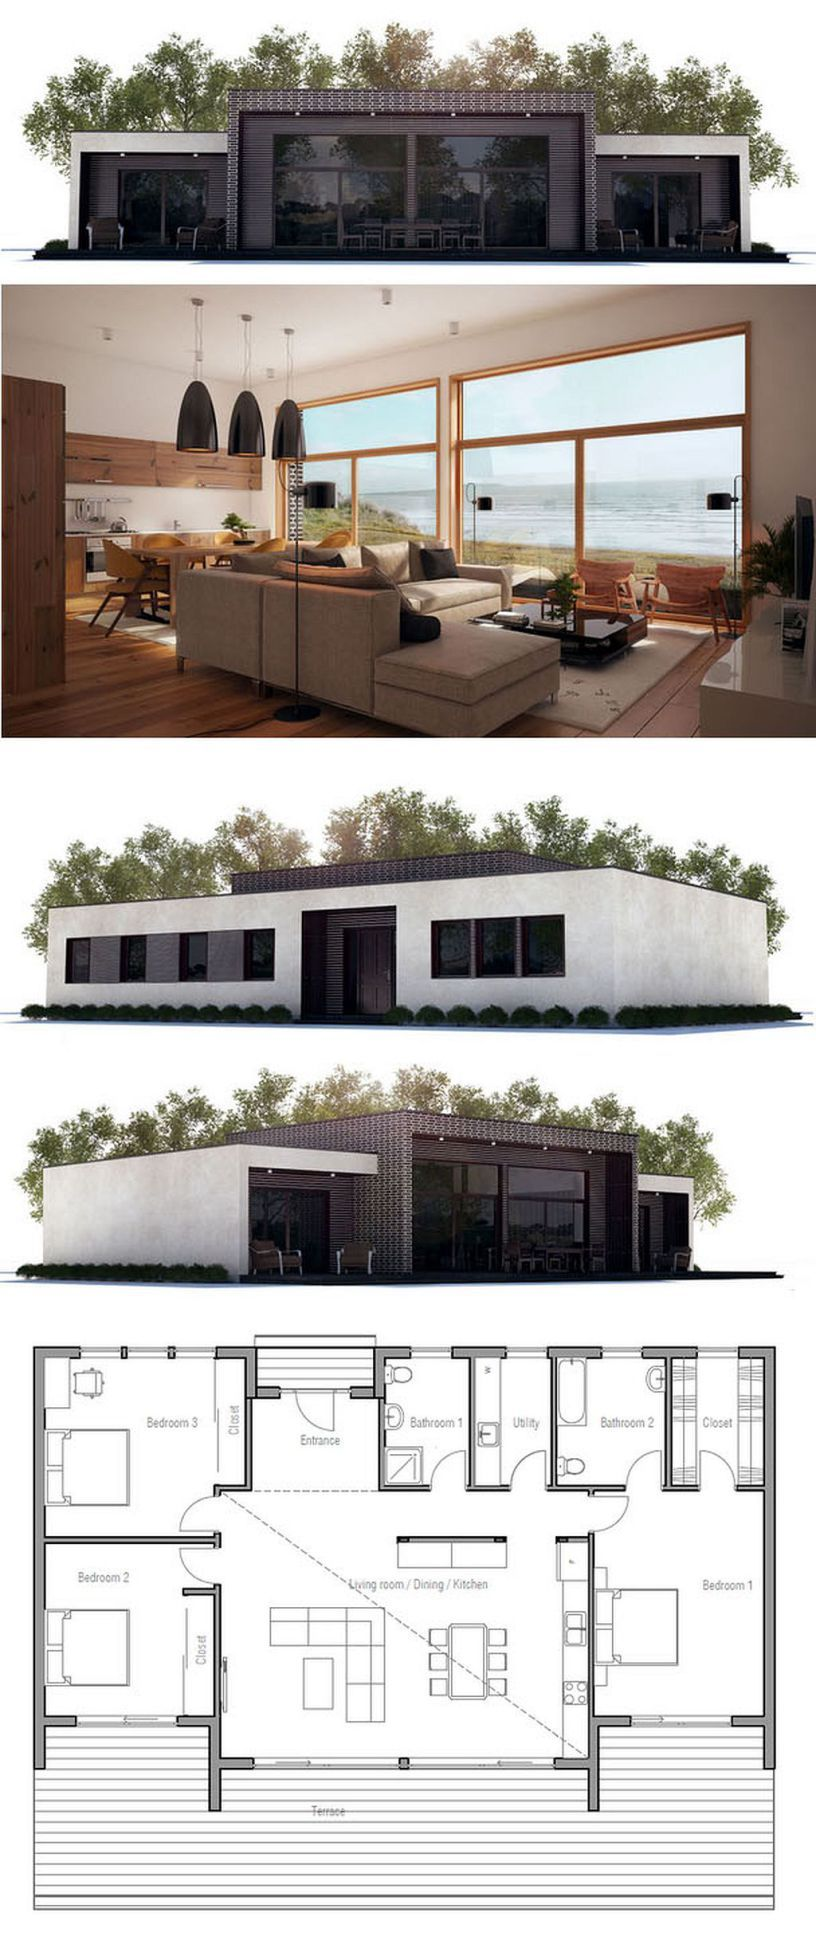 87 Shipping Container House Plans Ideas   Shipping container house ...